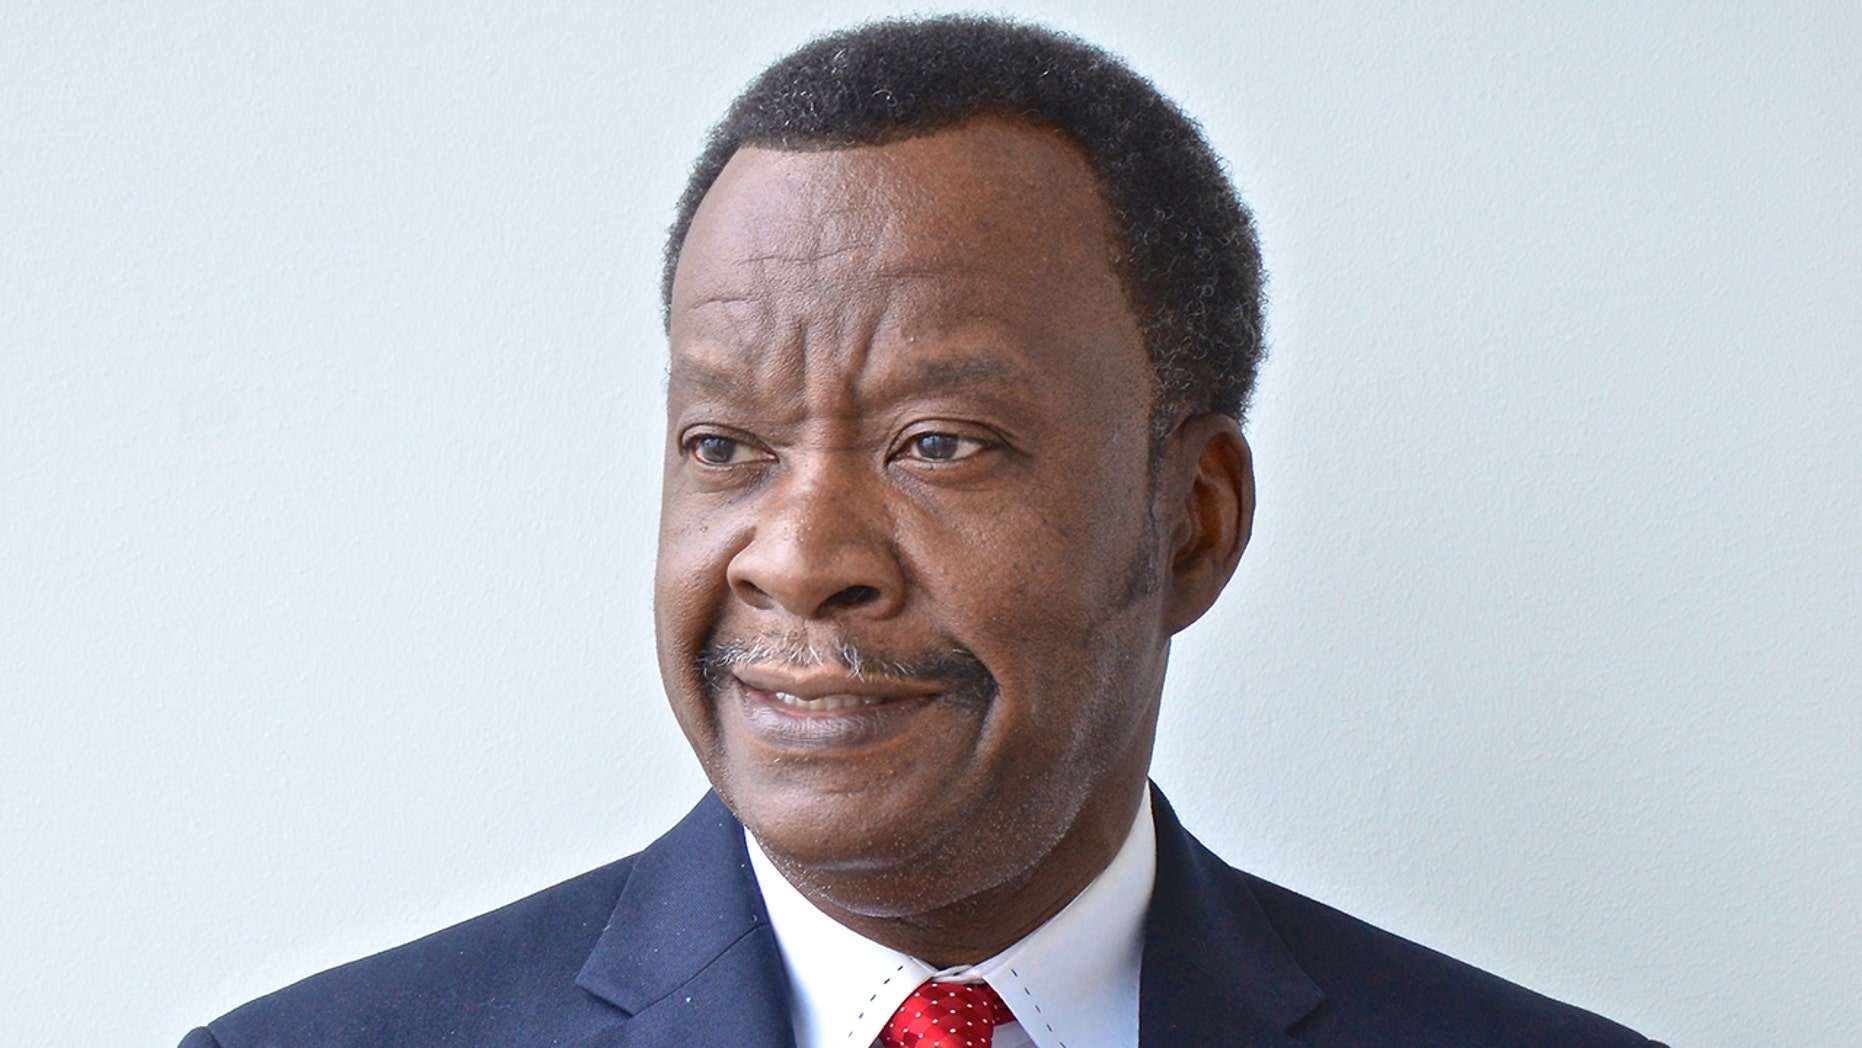 Willie Wilson, a philanthropist and mayoral candidate in Chicago, handed out $300,000 to churchgoers Sunday to help pay property taxes and other expenses.